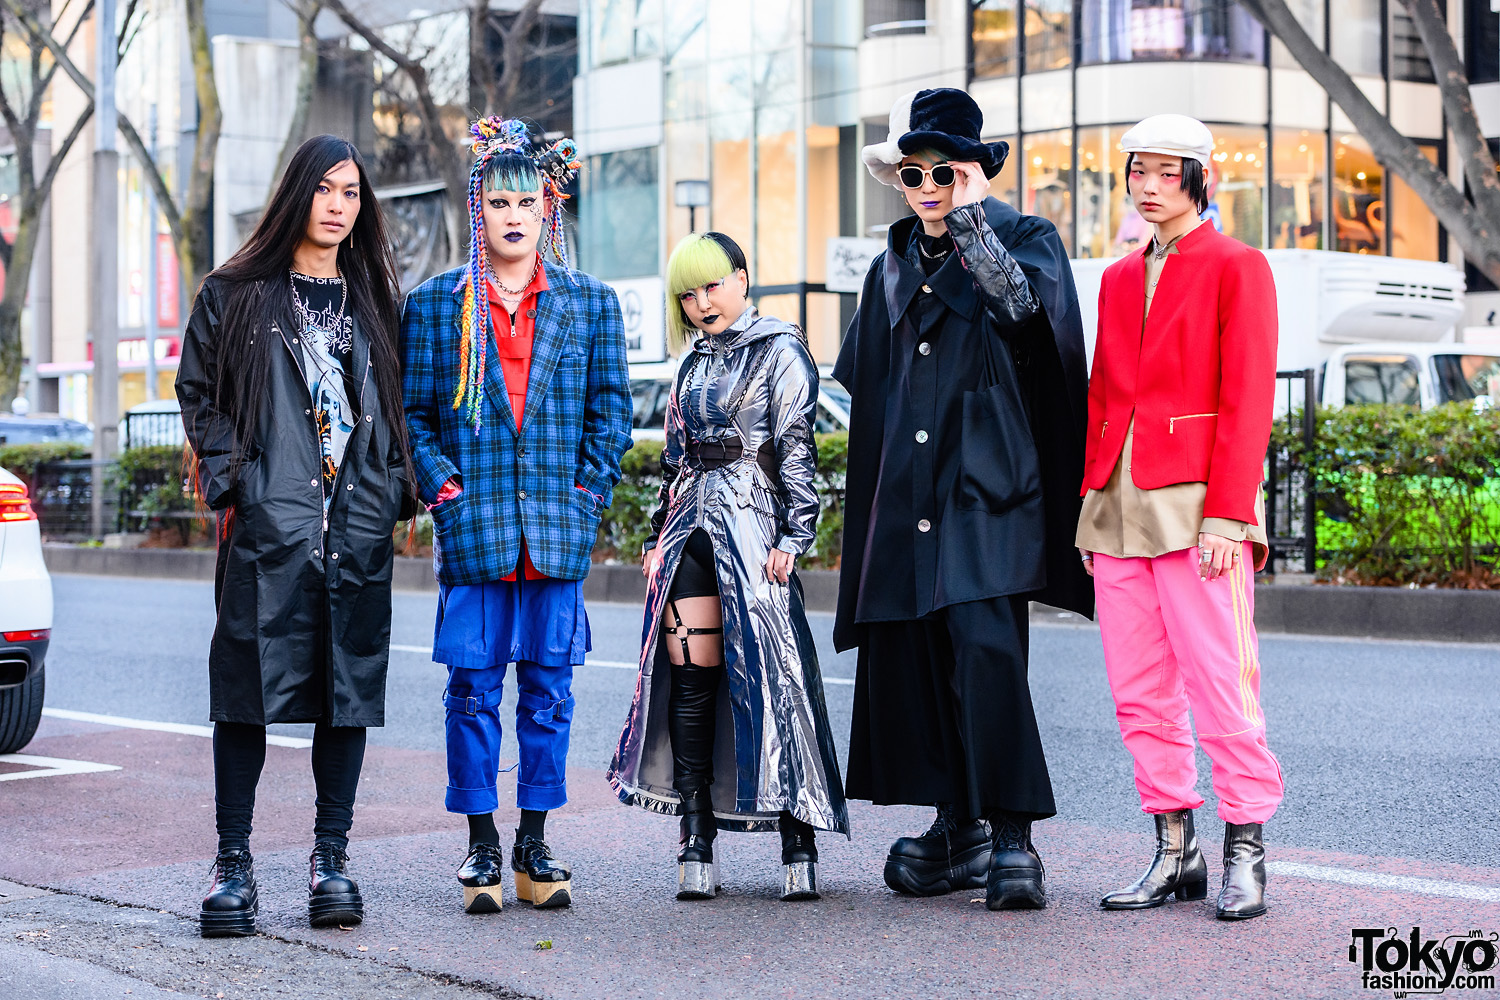 Harajuku Squad Styles w/ Cradle of Filth Tee, Multicolored Braided Buns, Vivienne Westwood, Dolls Kill Cyberpunk Fashion, Anrealage, LAD Musician, Demonia, Gosha Rubchinskiy x Adidas Pants & Saint Laurent Boots